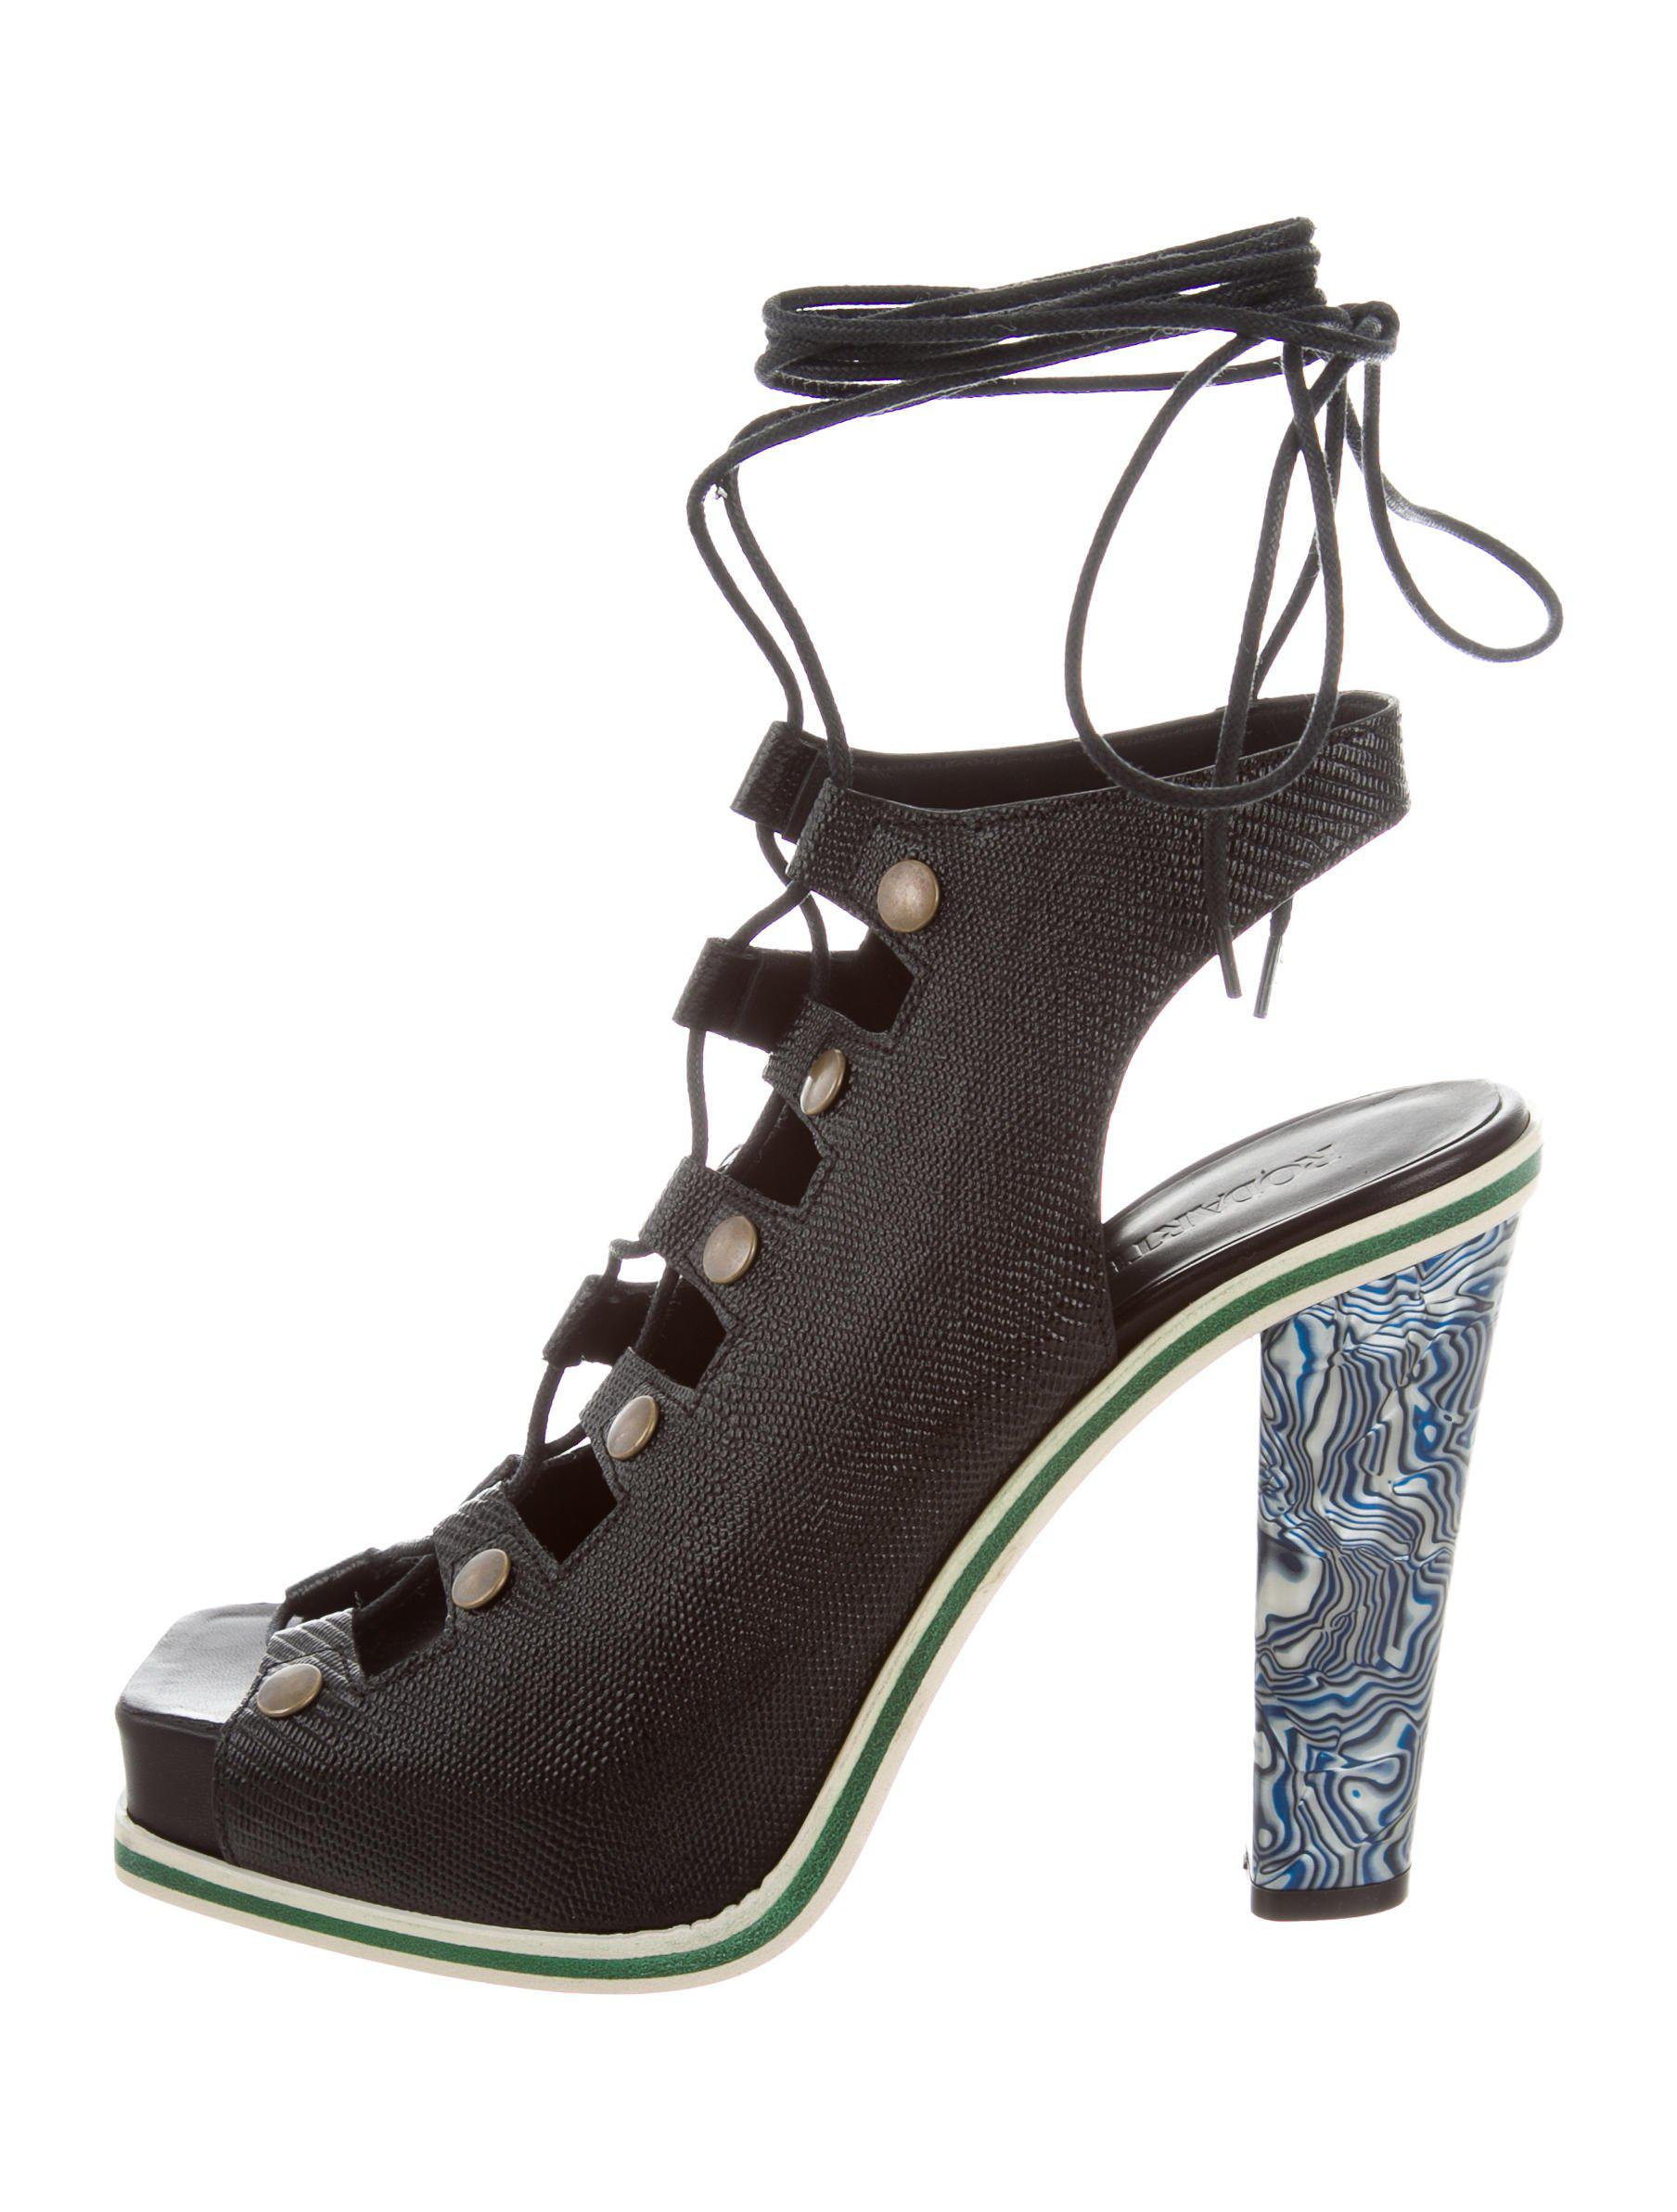 Rodarte 2015 Lace-Up Platform Sandals w/ Tags free shipping best prices for sale cheap authentic outlet 2015 XjxQYw1xIw